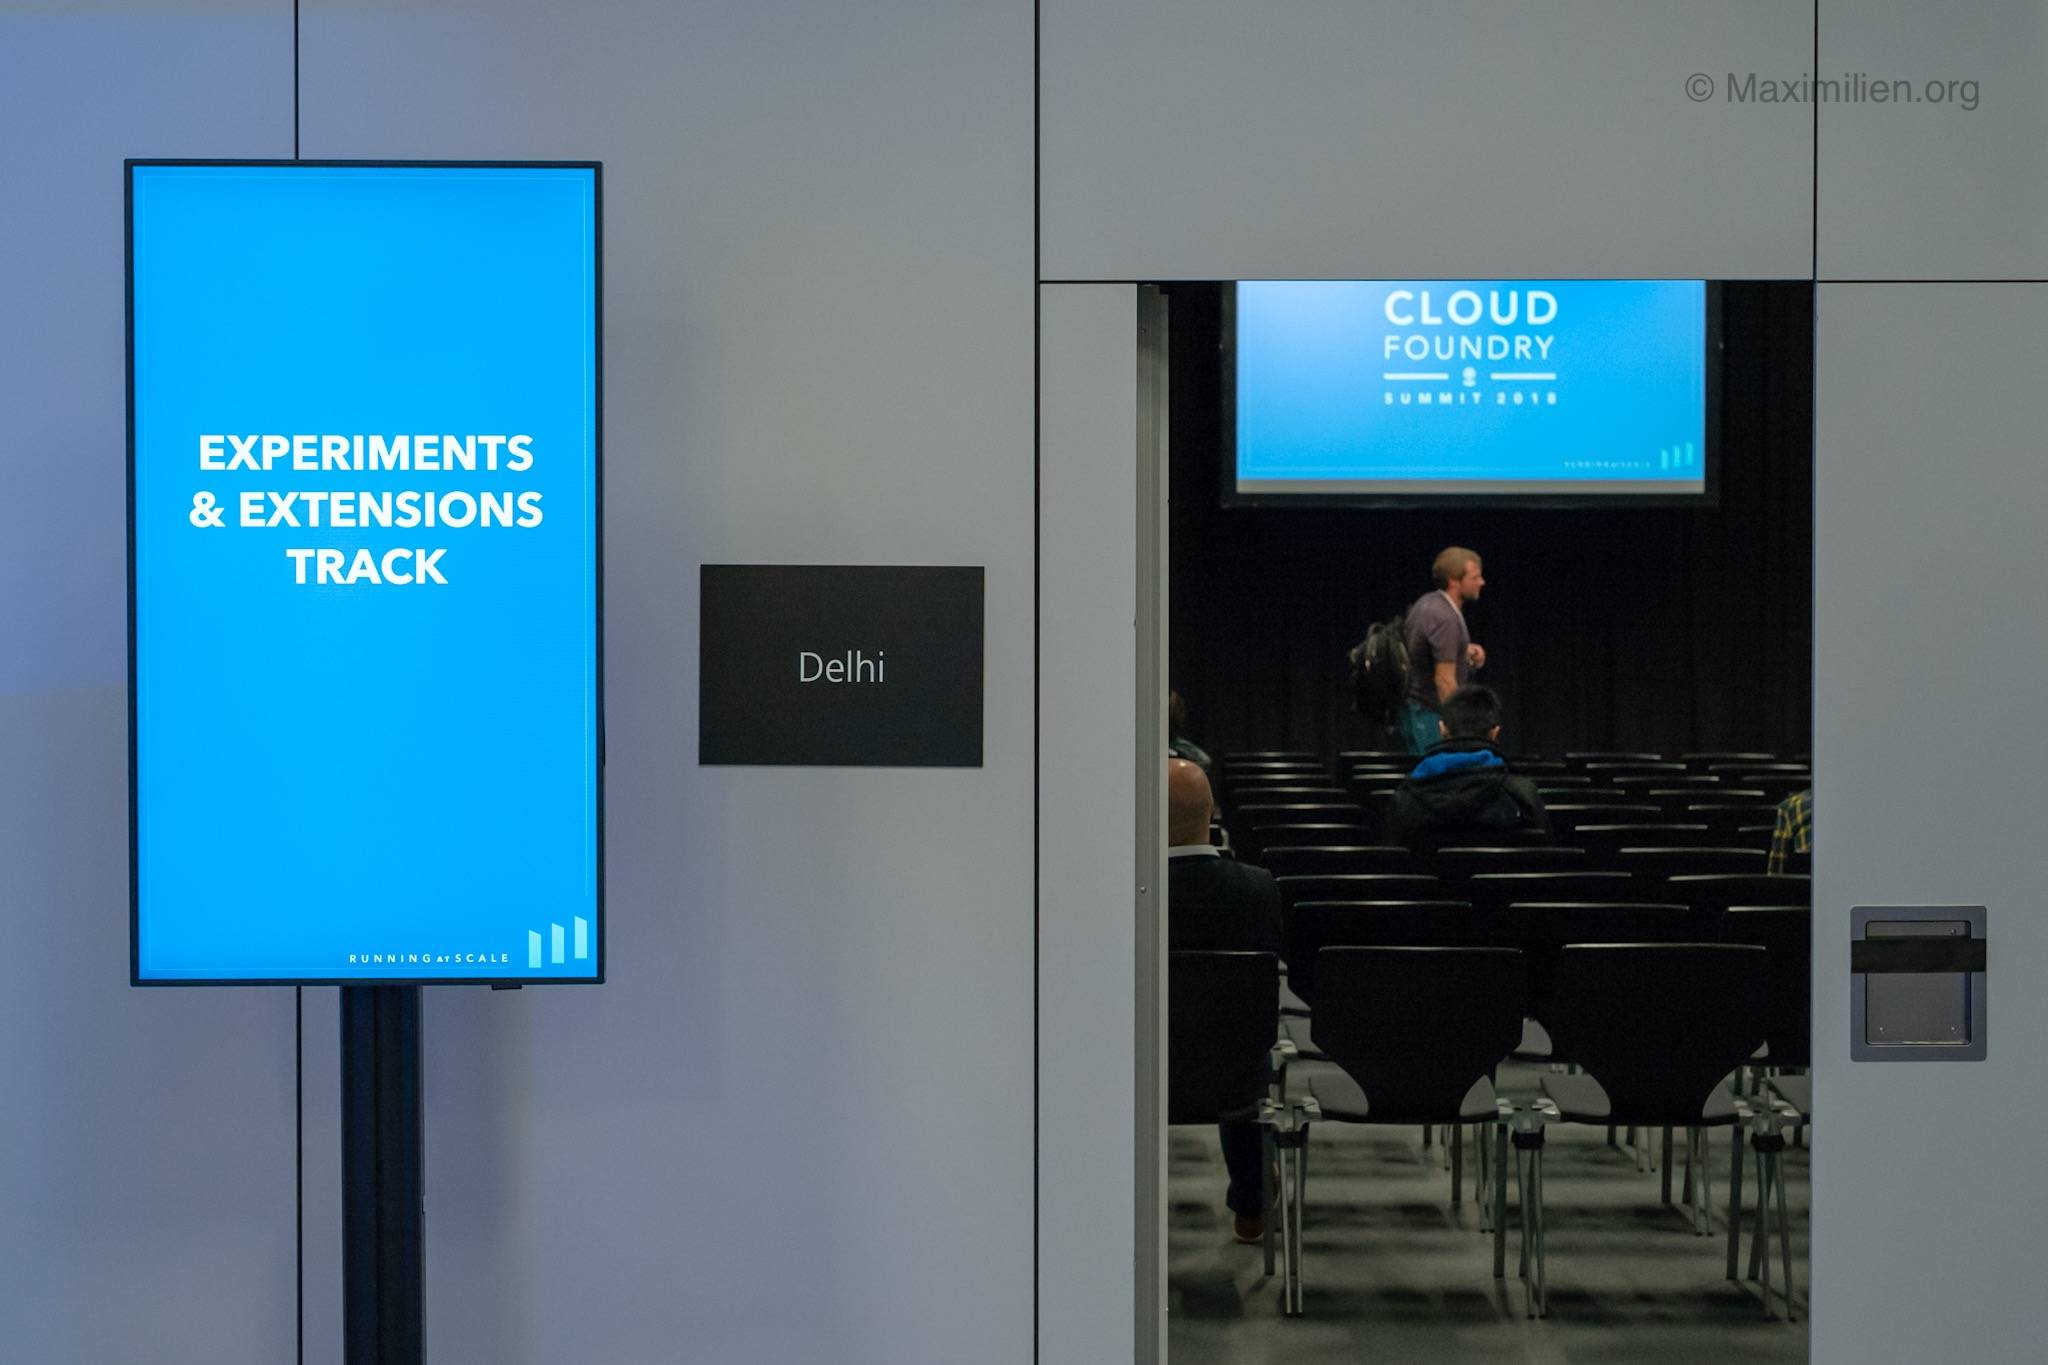 Experimentation and Extensions track at CF Summit 2018 in Basel